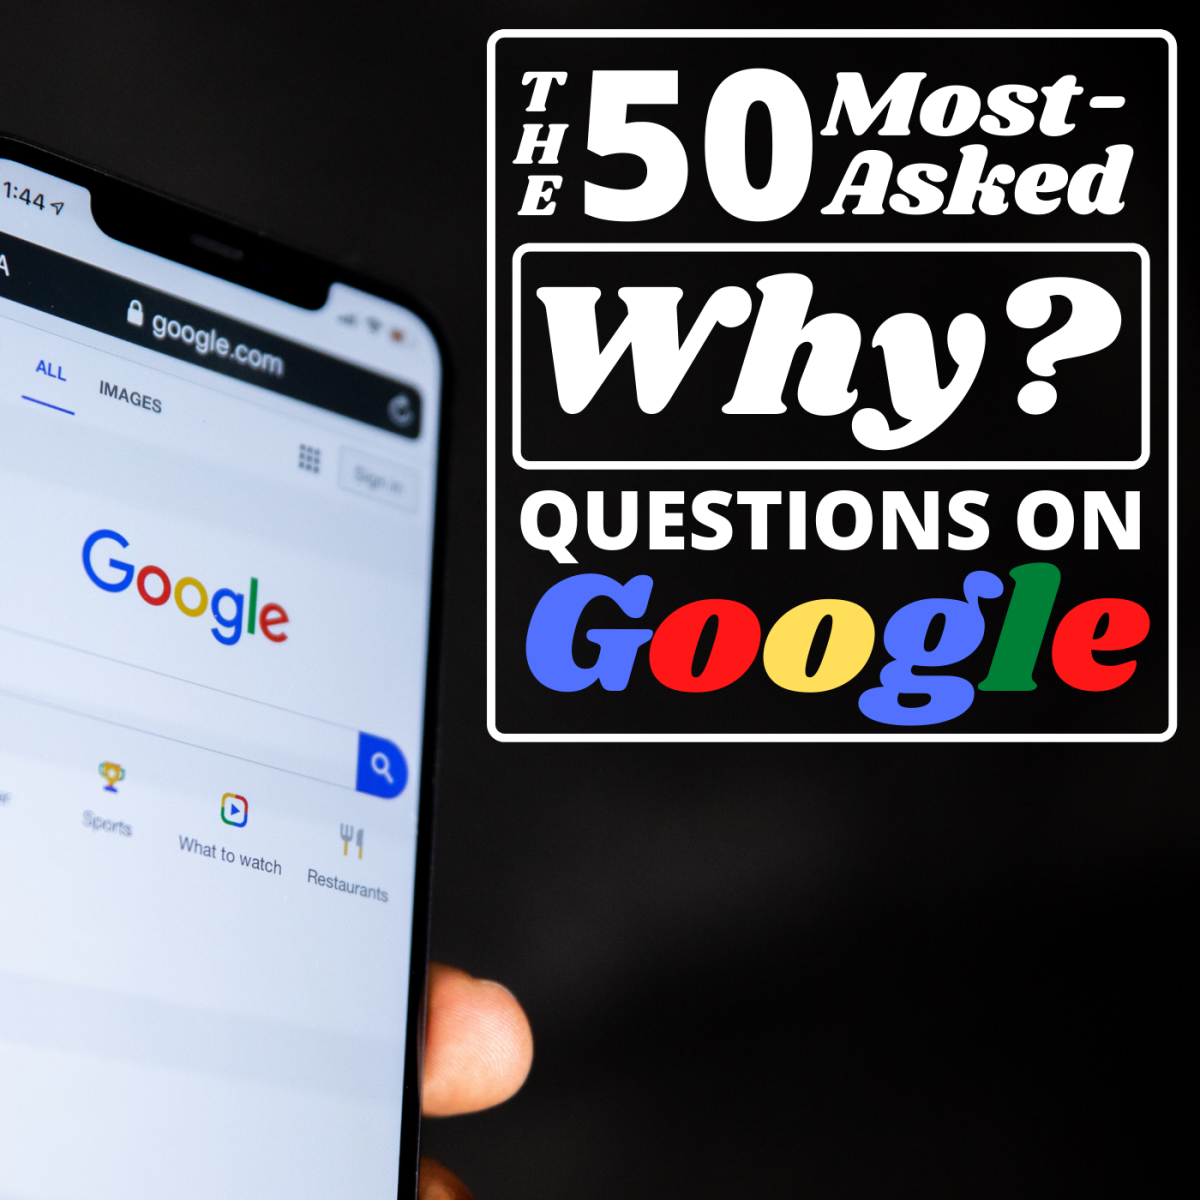 What are people asking Google most?